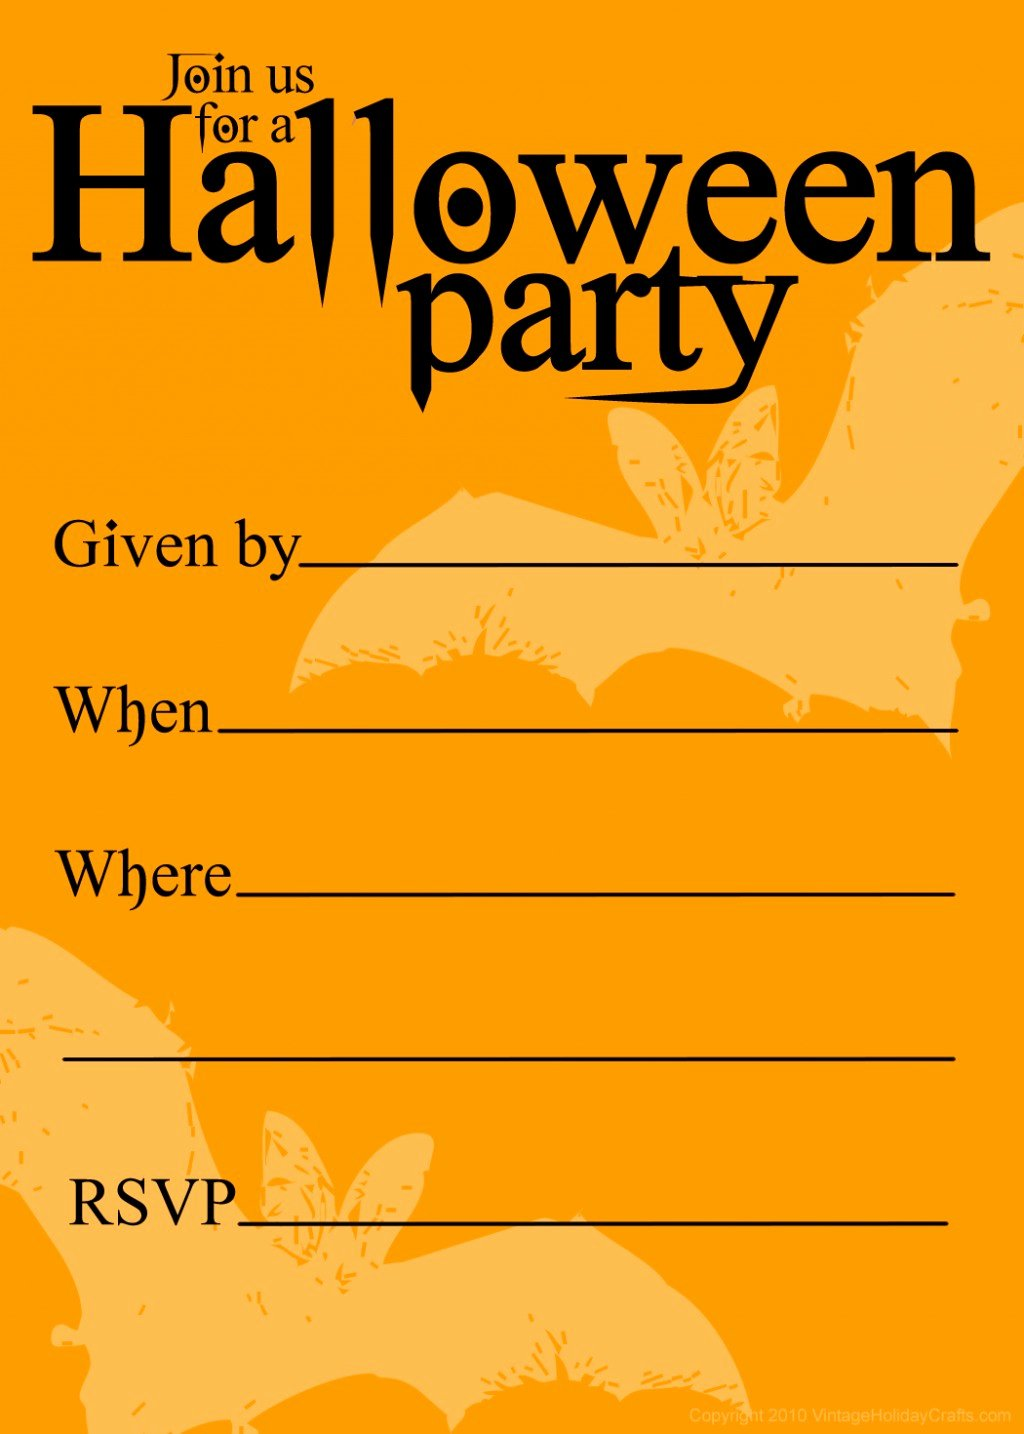 Halloween Party Invitation Template Fresh Halloween Invite Templates